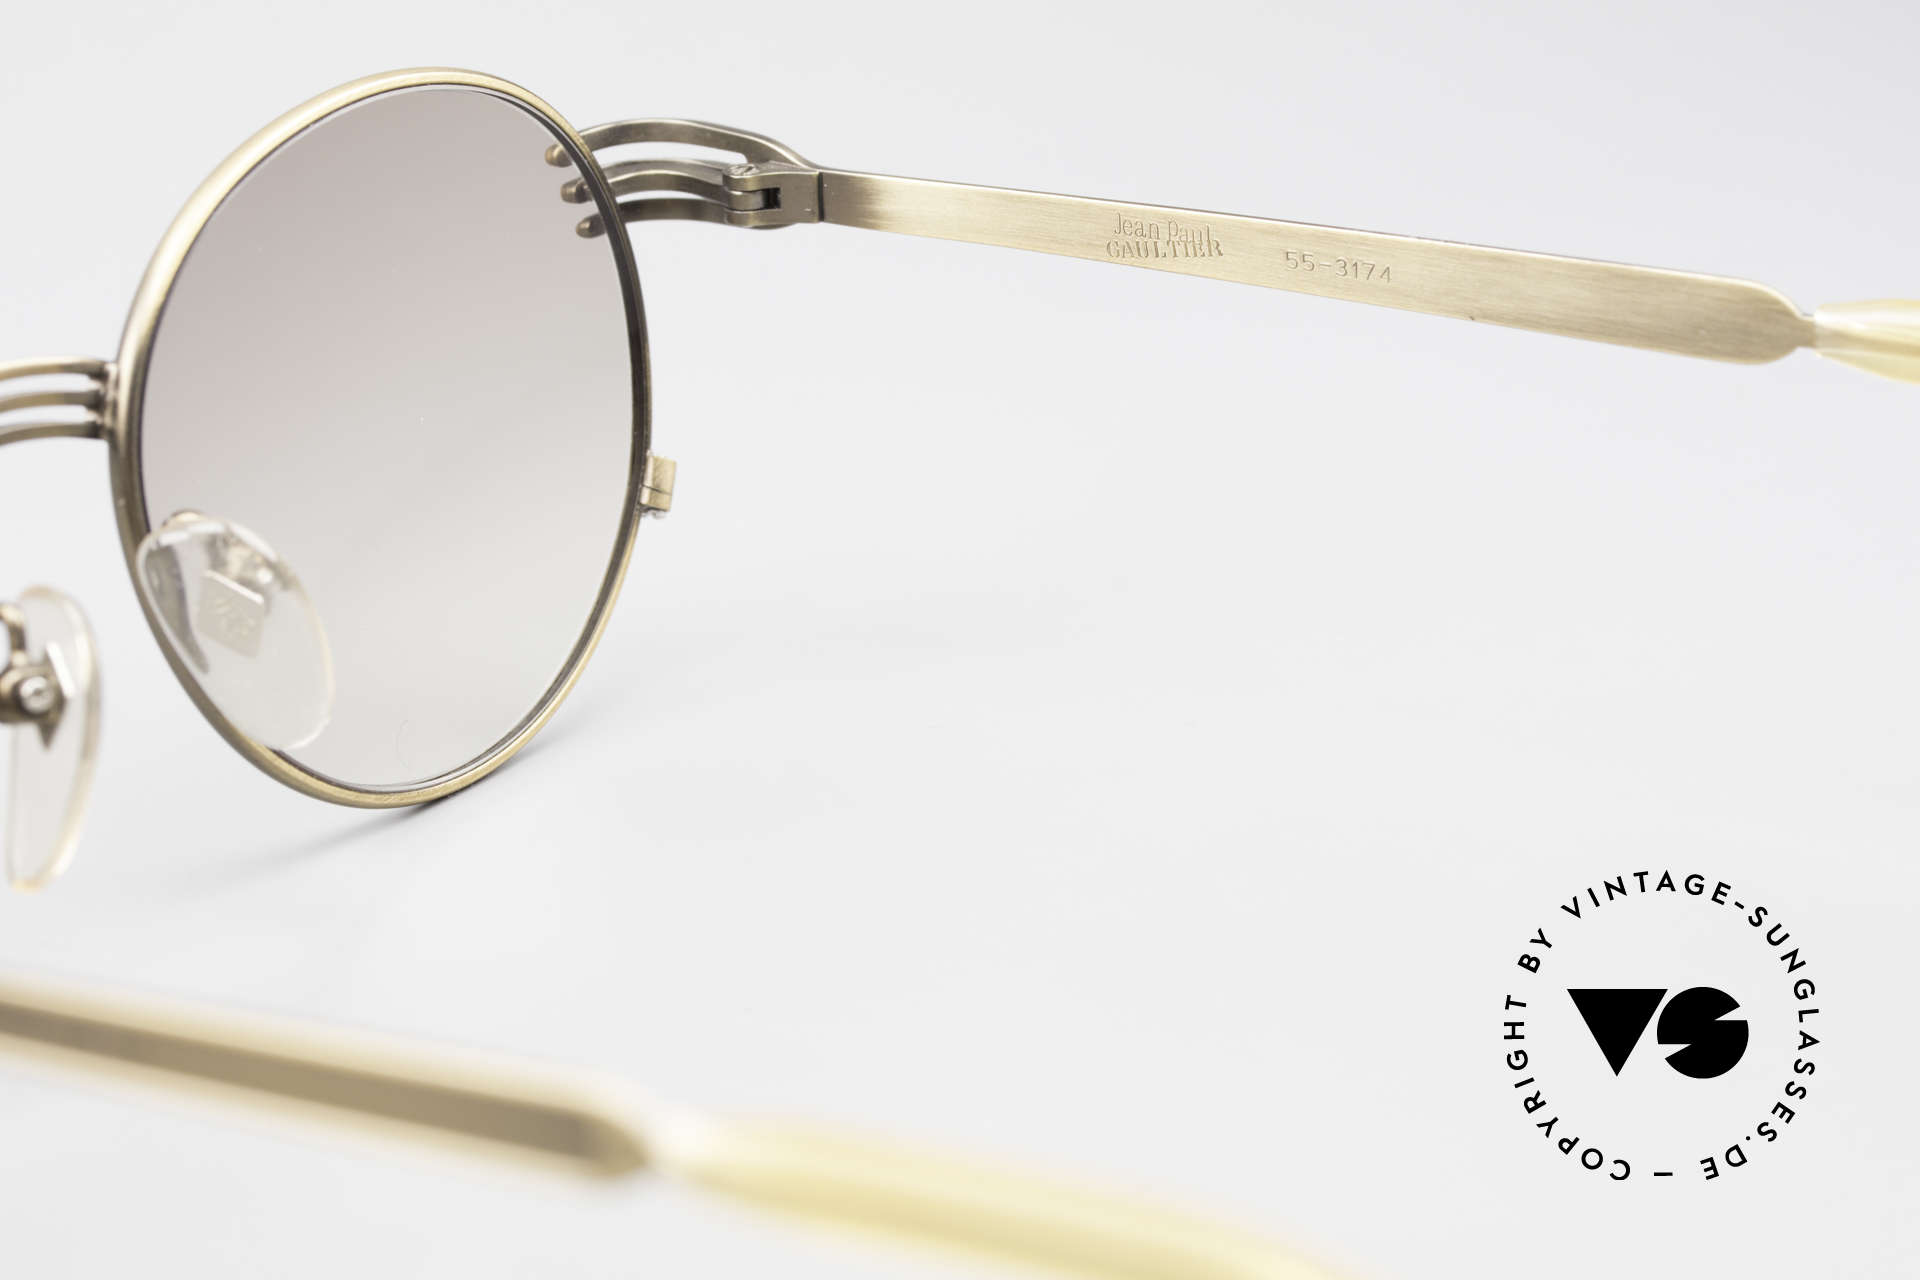 """Jean Paul Gaultier 55-3174 Designer Vintage Glasses 90's, never worn (like all our rare """"old"""" GAULTIER sunglasses), Made for Men and Women"""